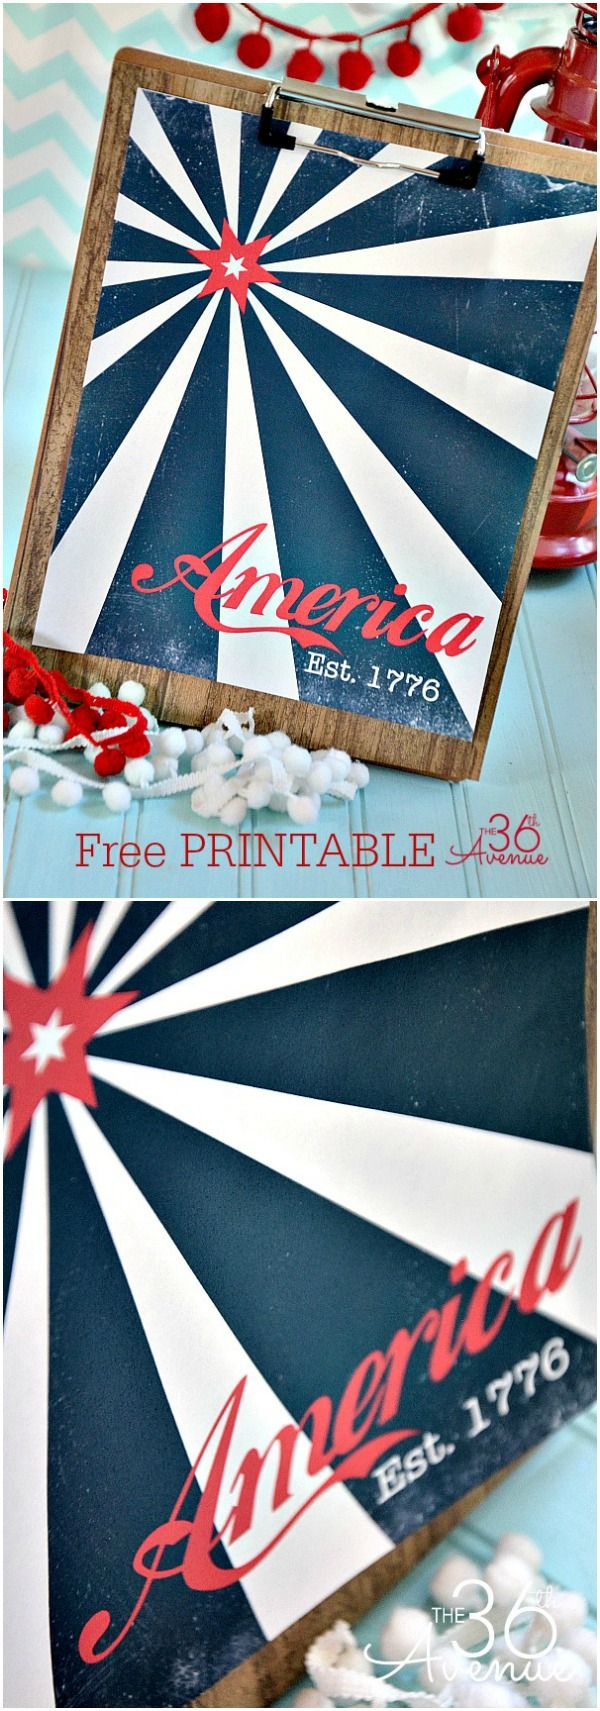 Fourth of July FREE PRINTABLE  at the36thavenue.com